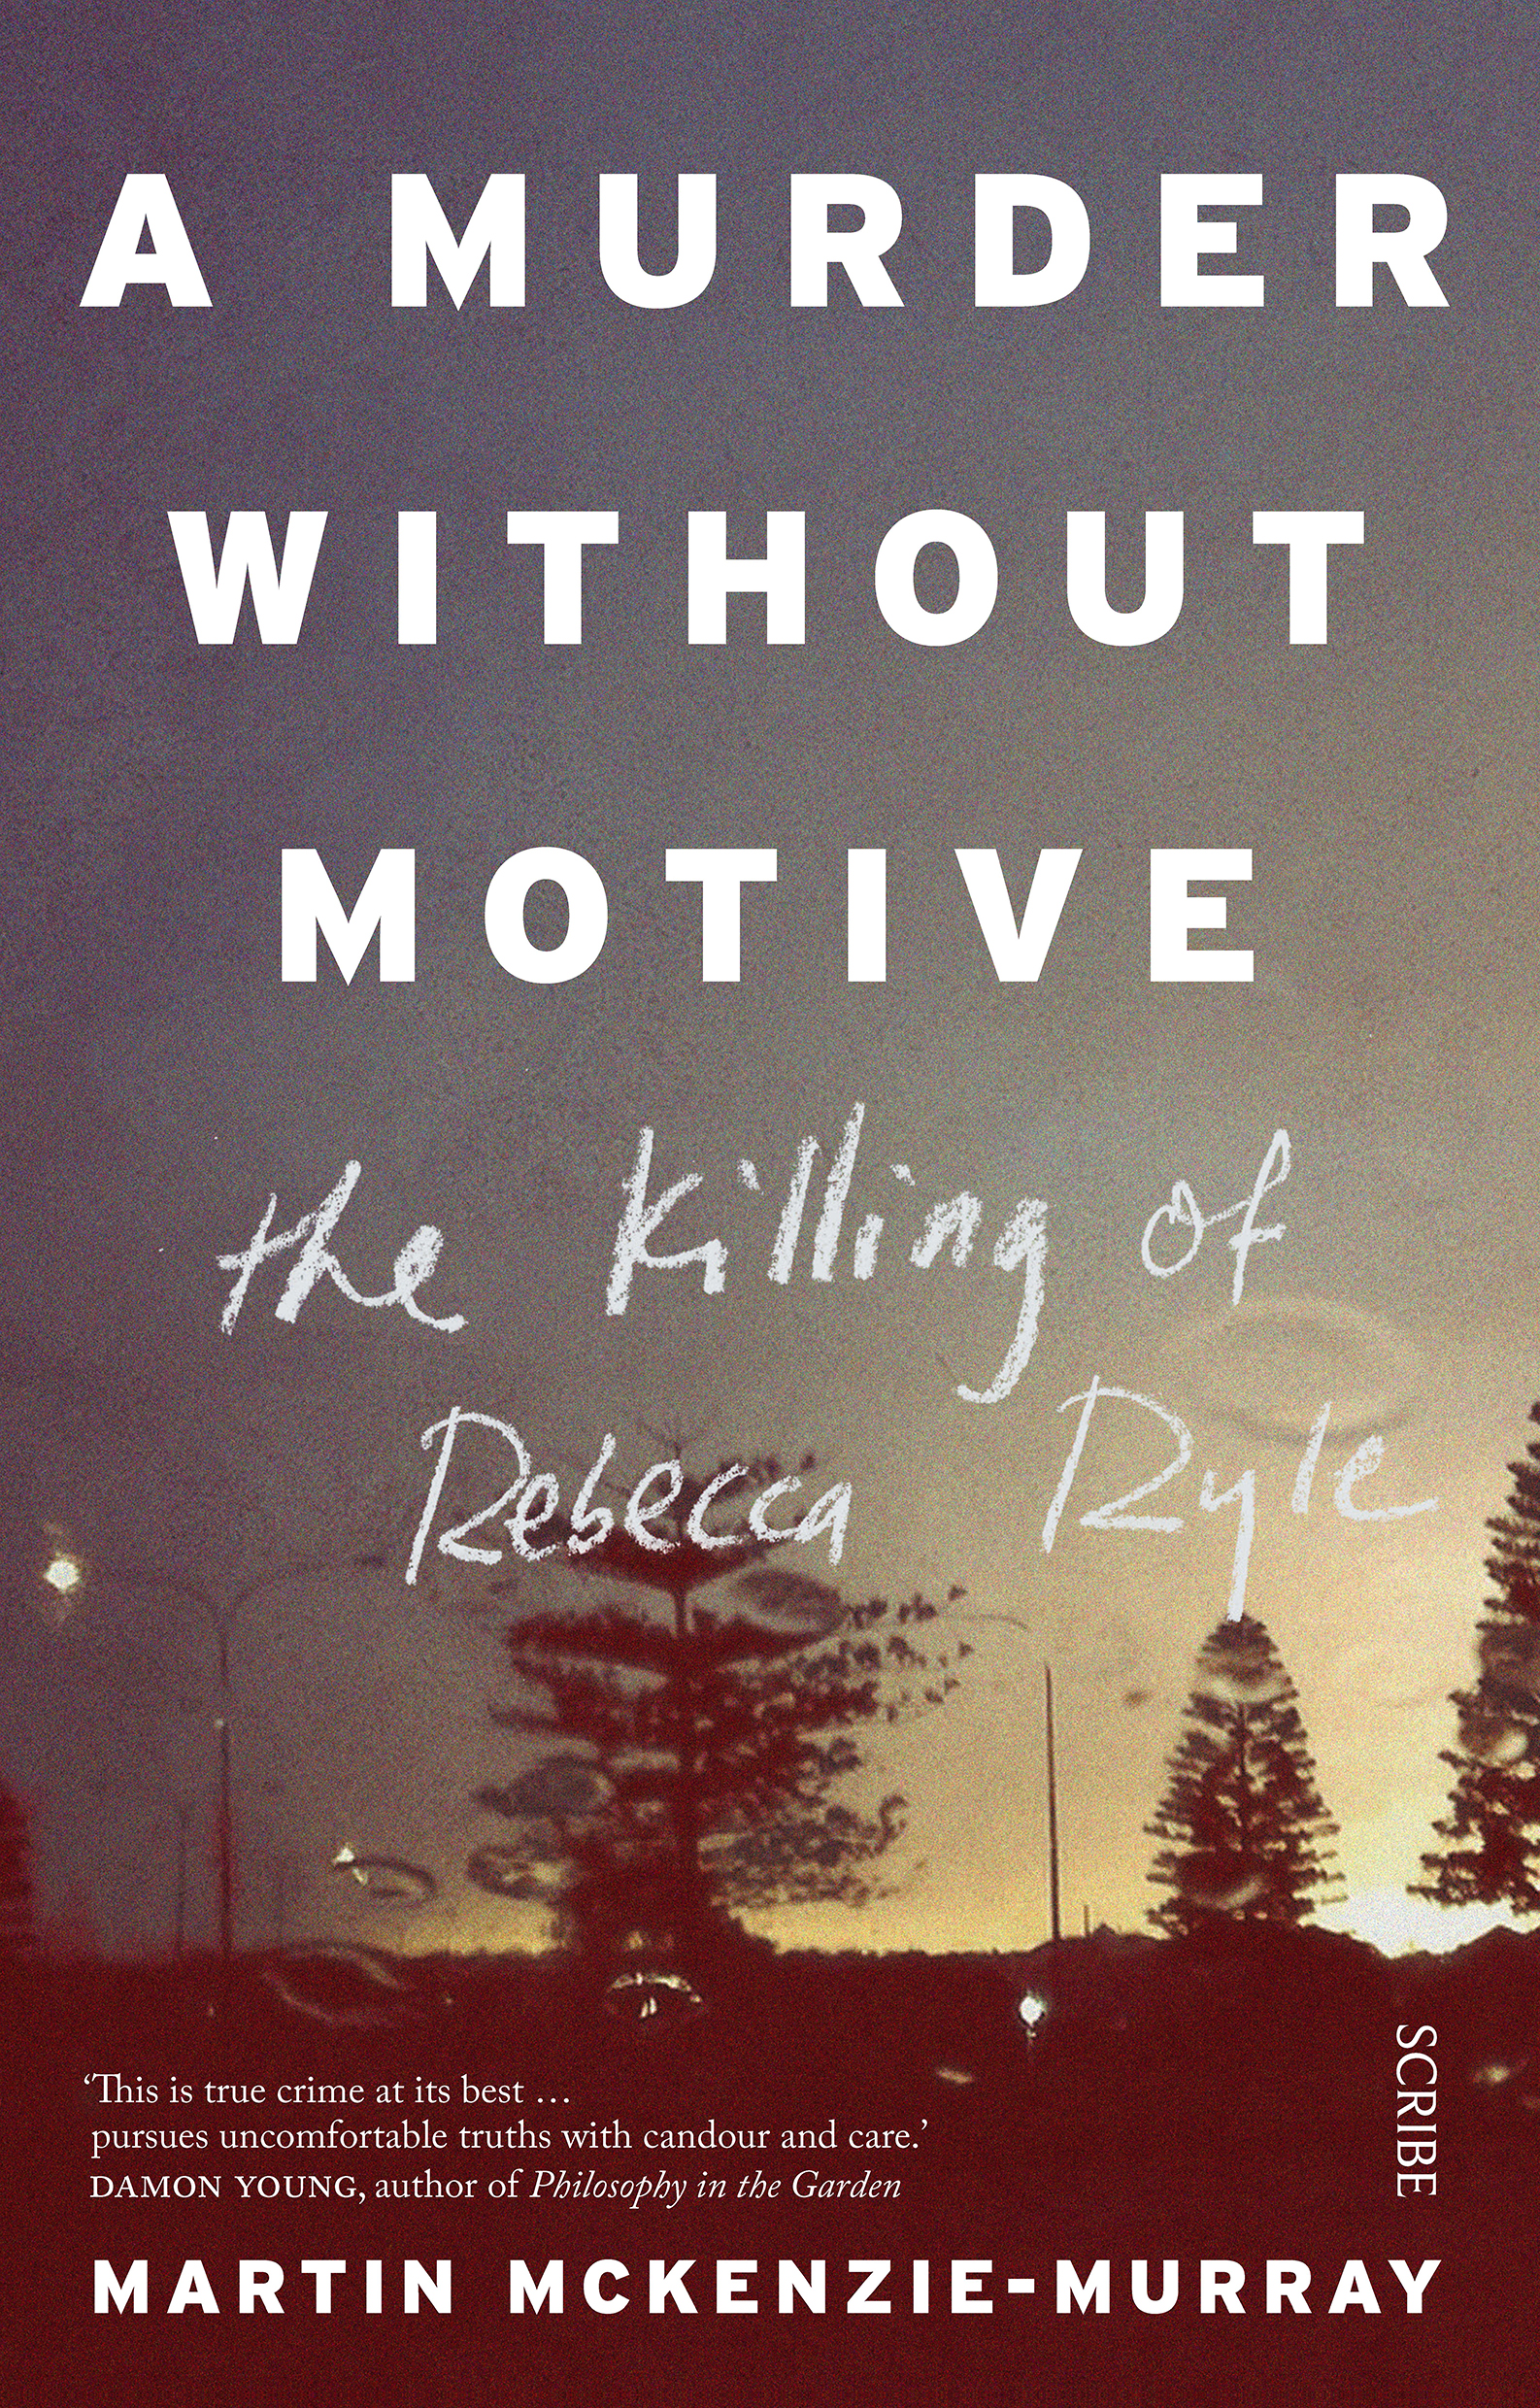 A Murder Without Motive - The Killing of Rebecca Ryle by Martin McKenzie-Murray, ISBN: 9781925321357